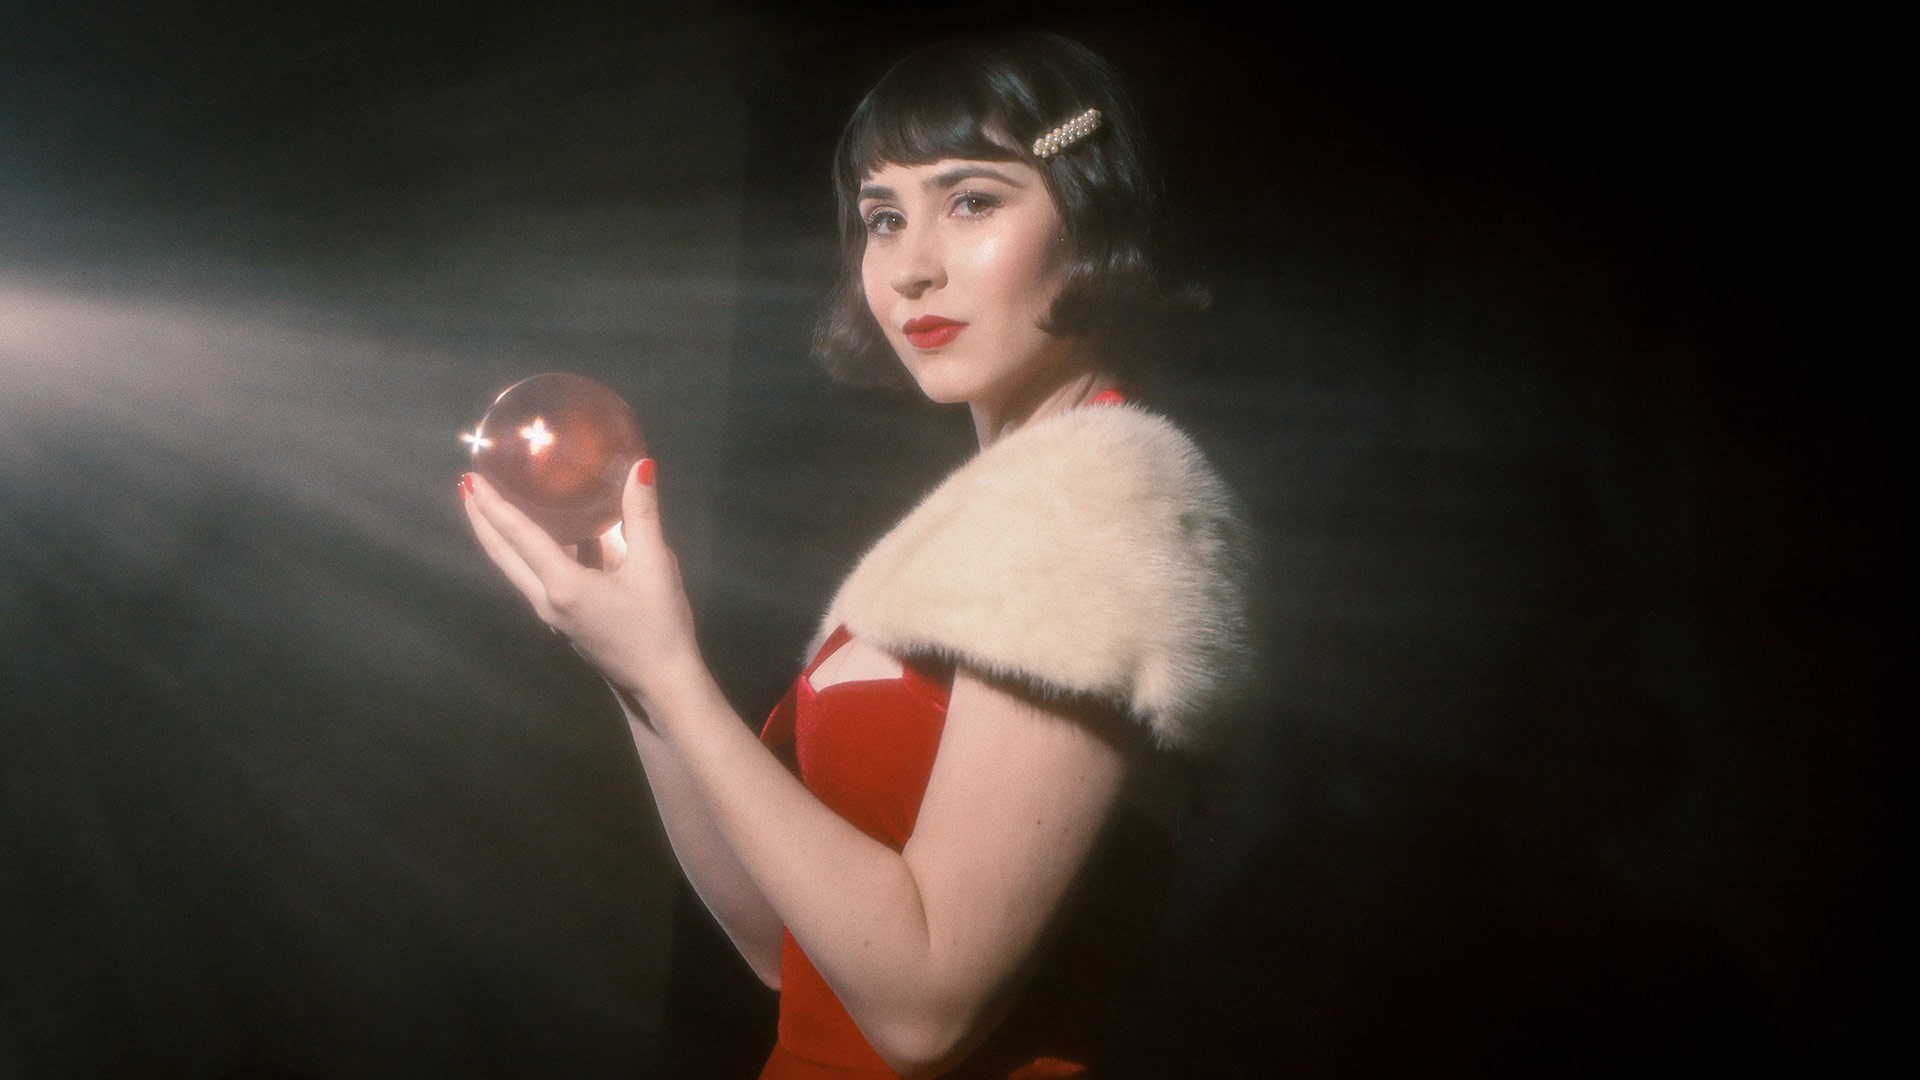 Elizabeth Messick poses with a red orb. | Kalie Johnson